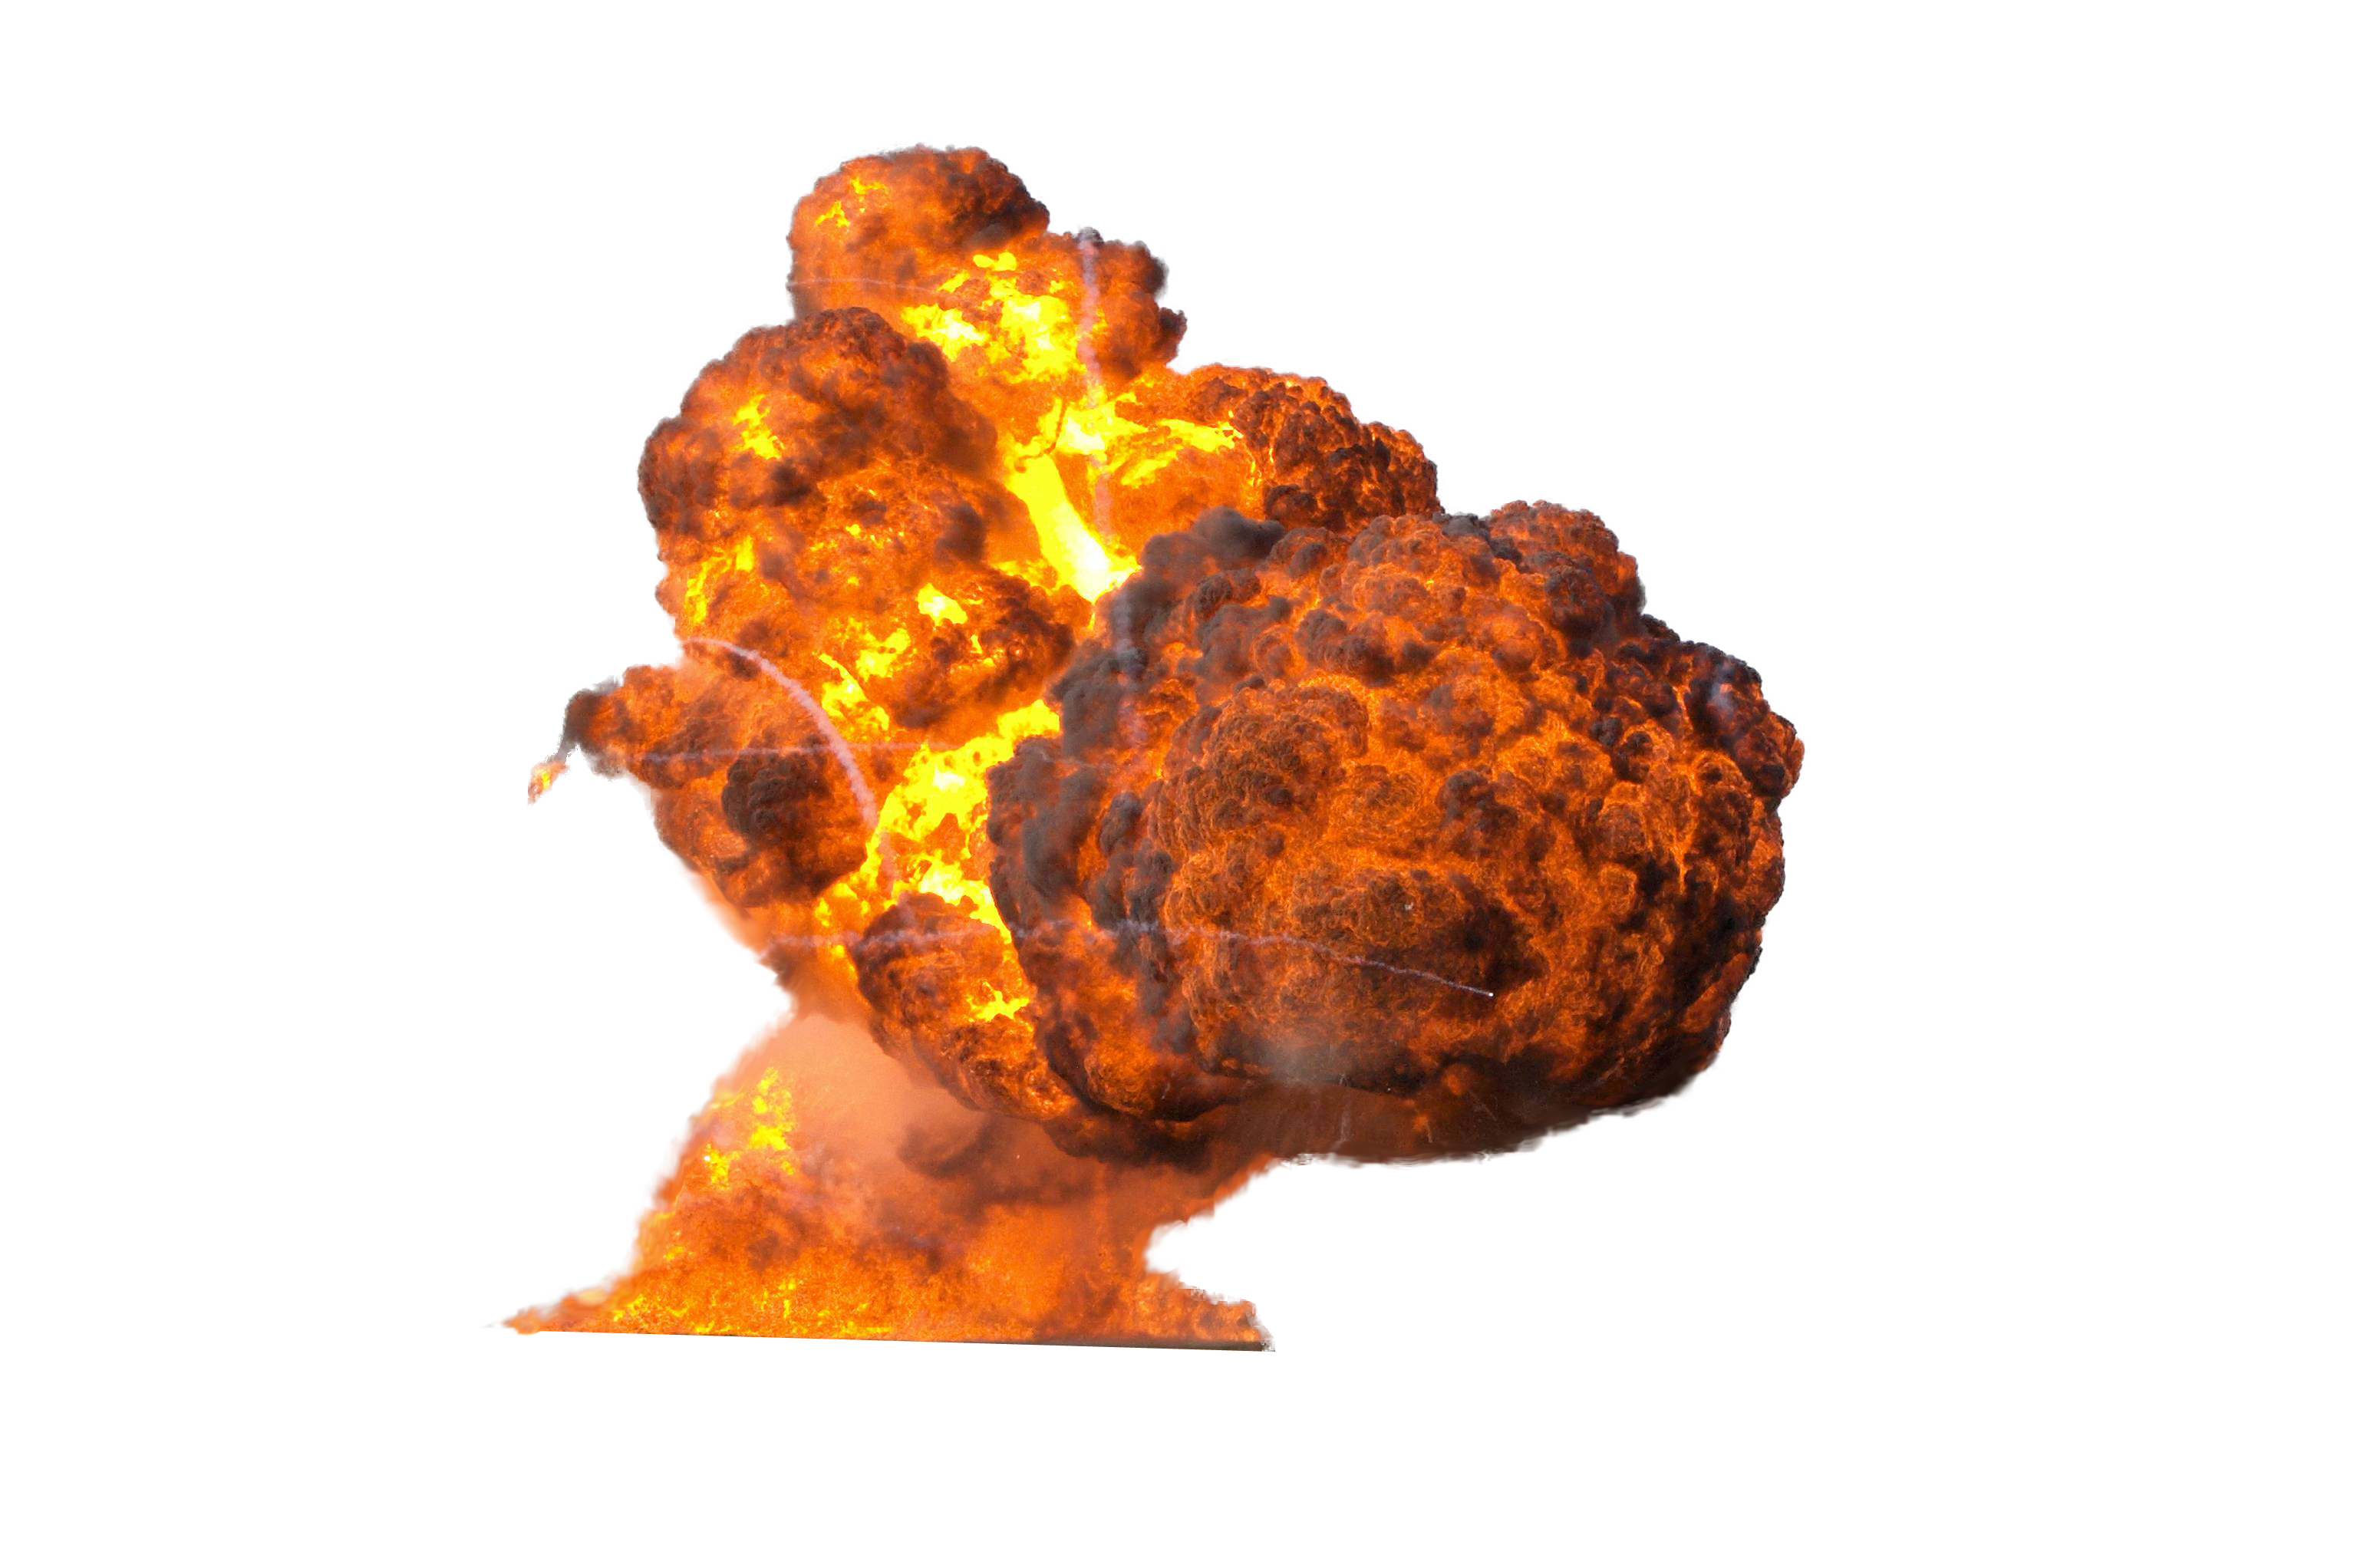 Big explosion with fire. Smoke bomb png